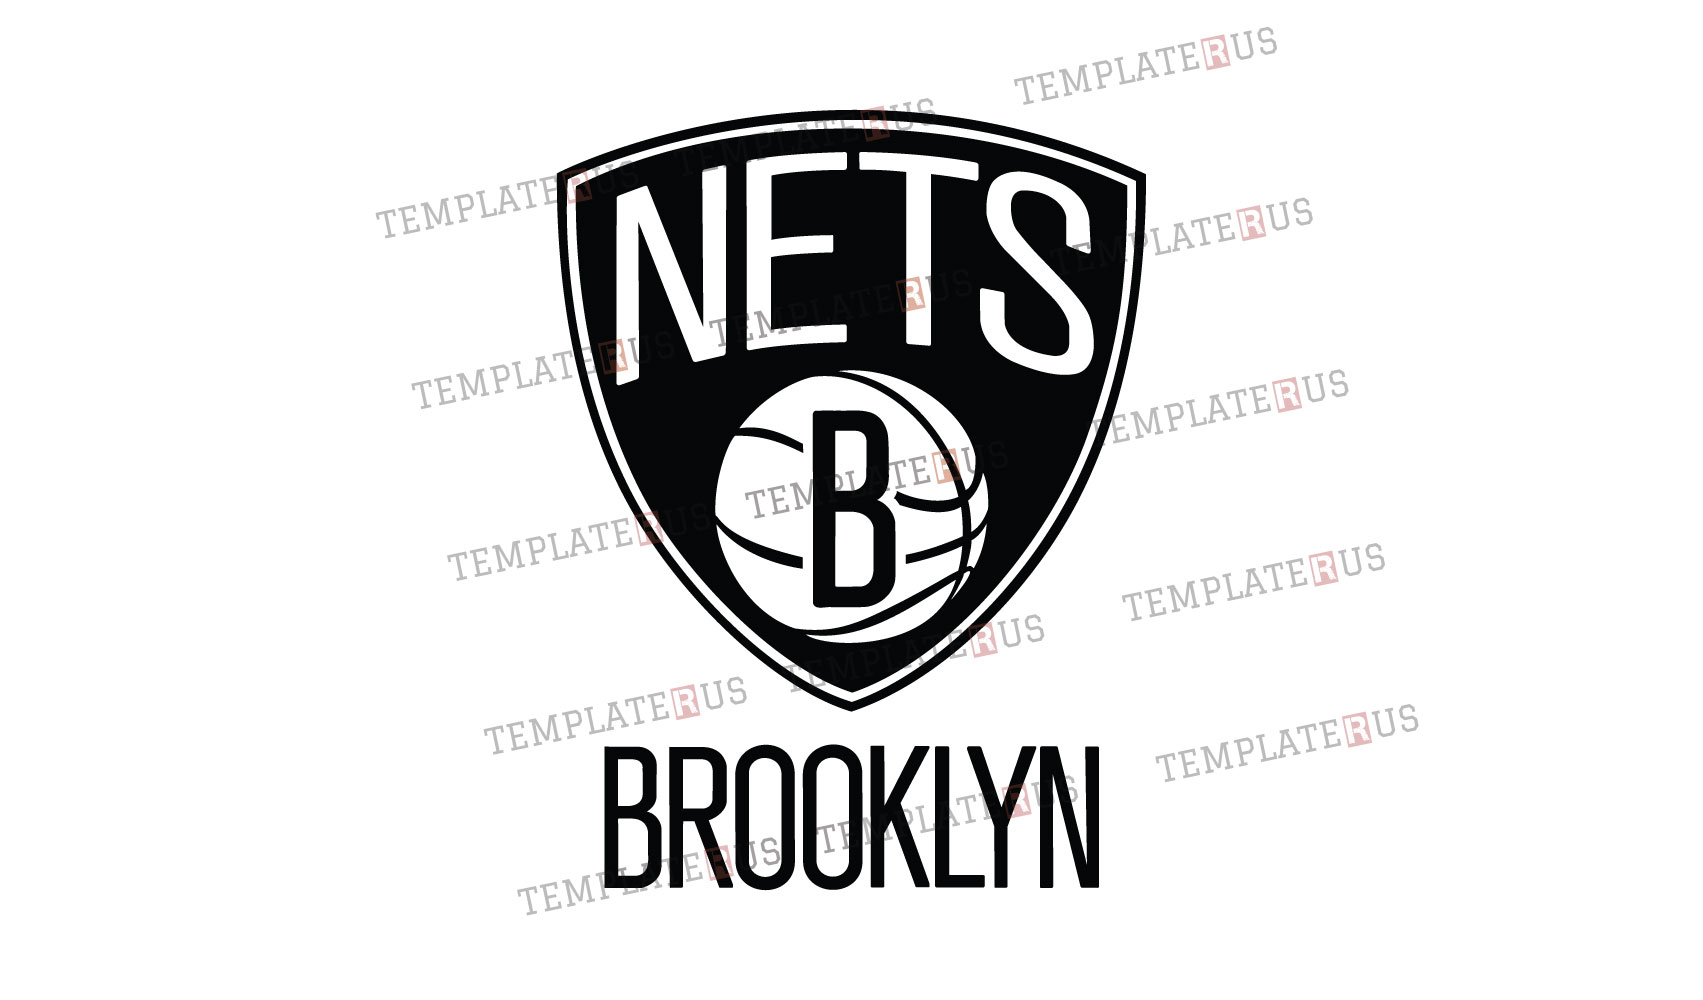 Brooklyn Nets Logo Svg Dxf Clipart Cut File Vector Eps Ai Pdf Icon Silhouette Design Templaterus